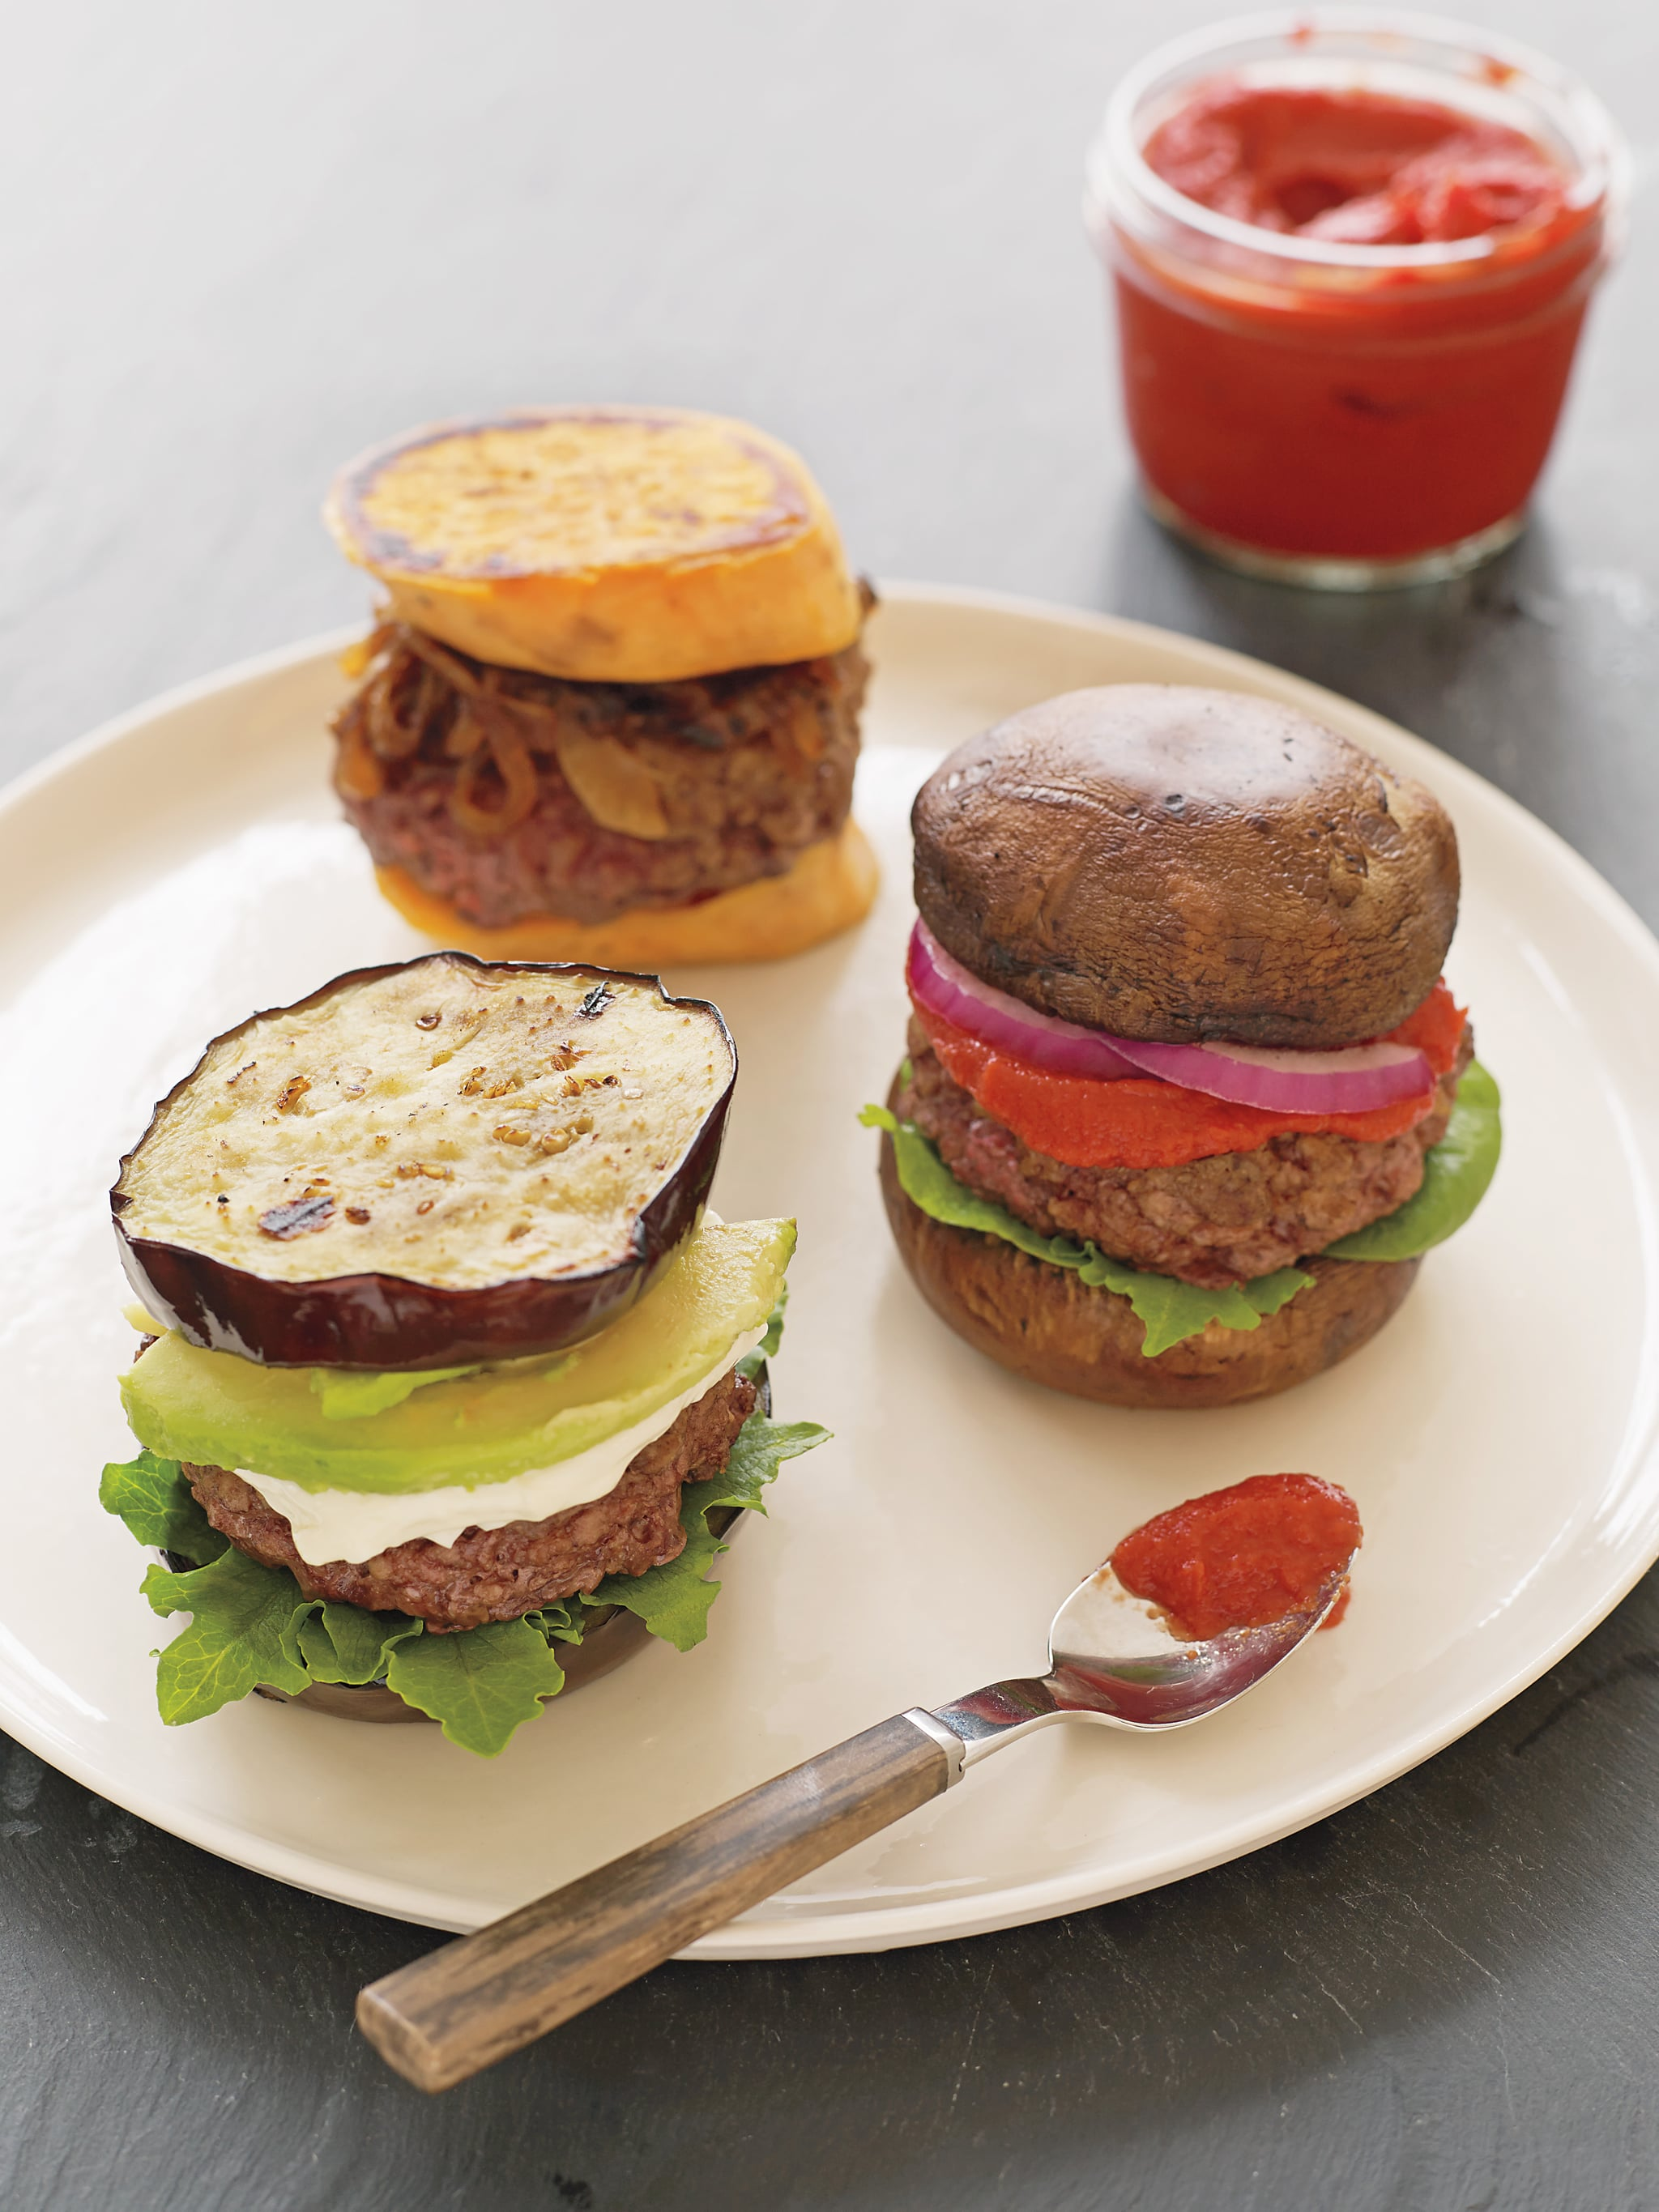 This 5-Ingredient Whole30 Burger Is Perfect For Clean Eating